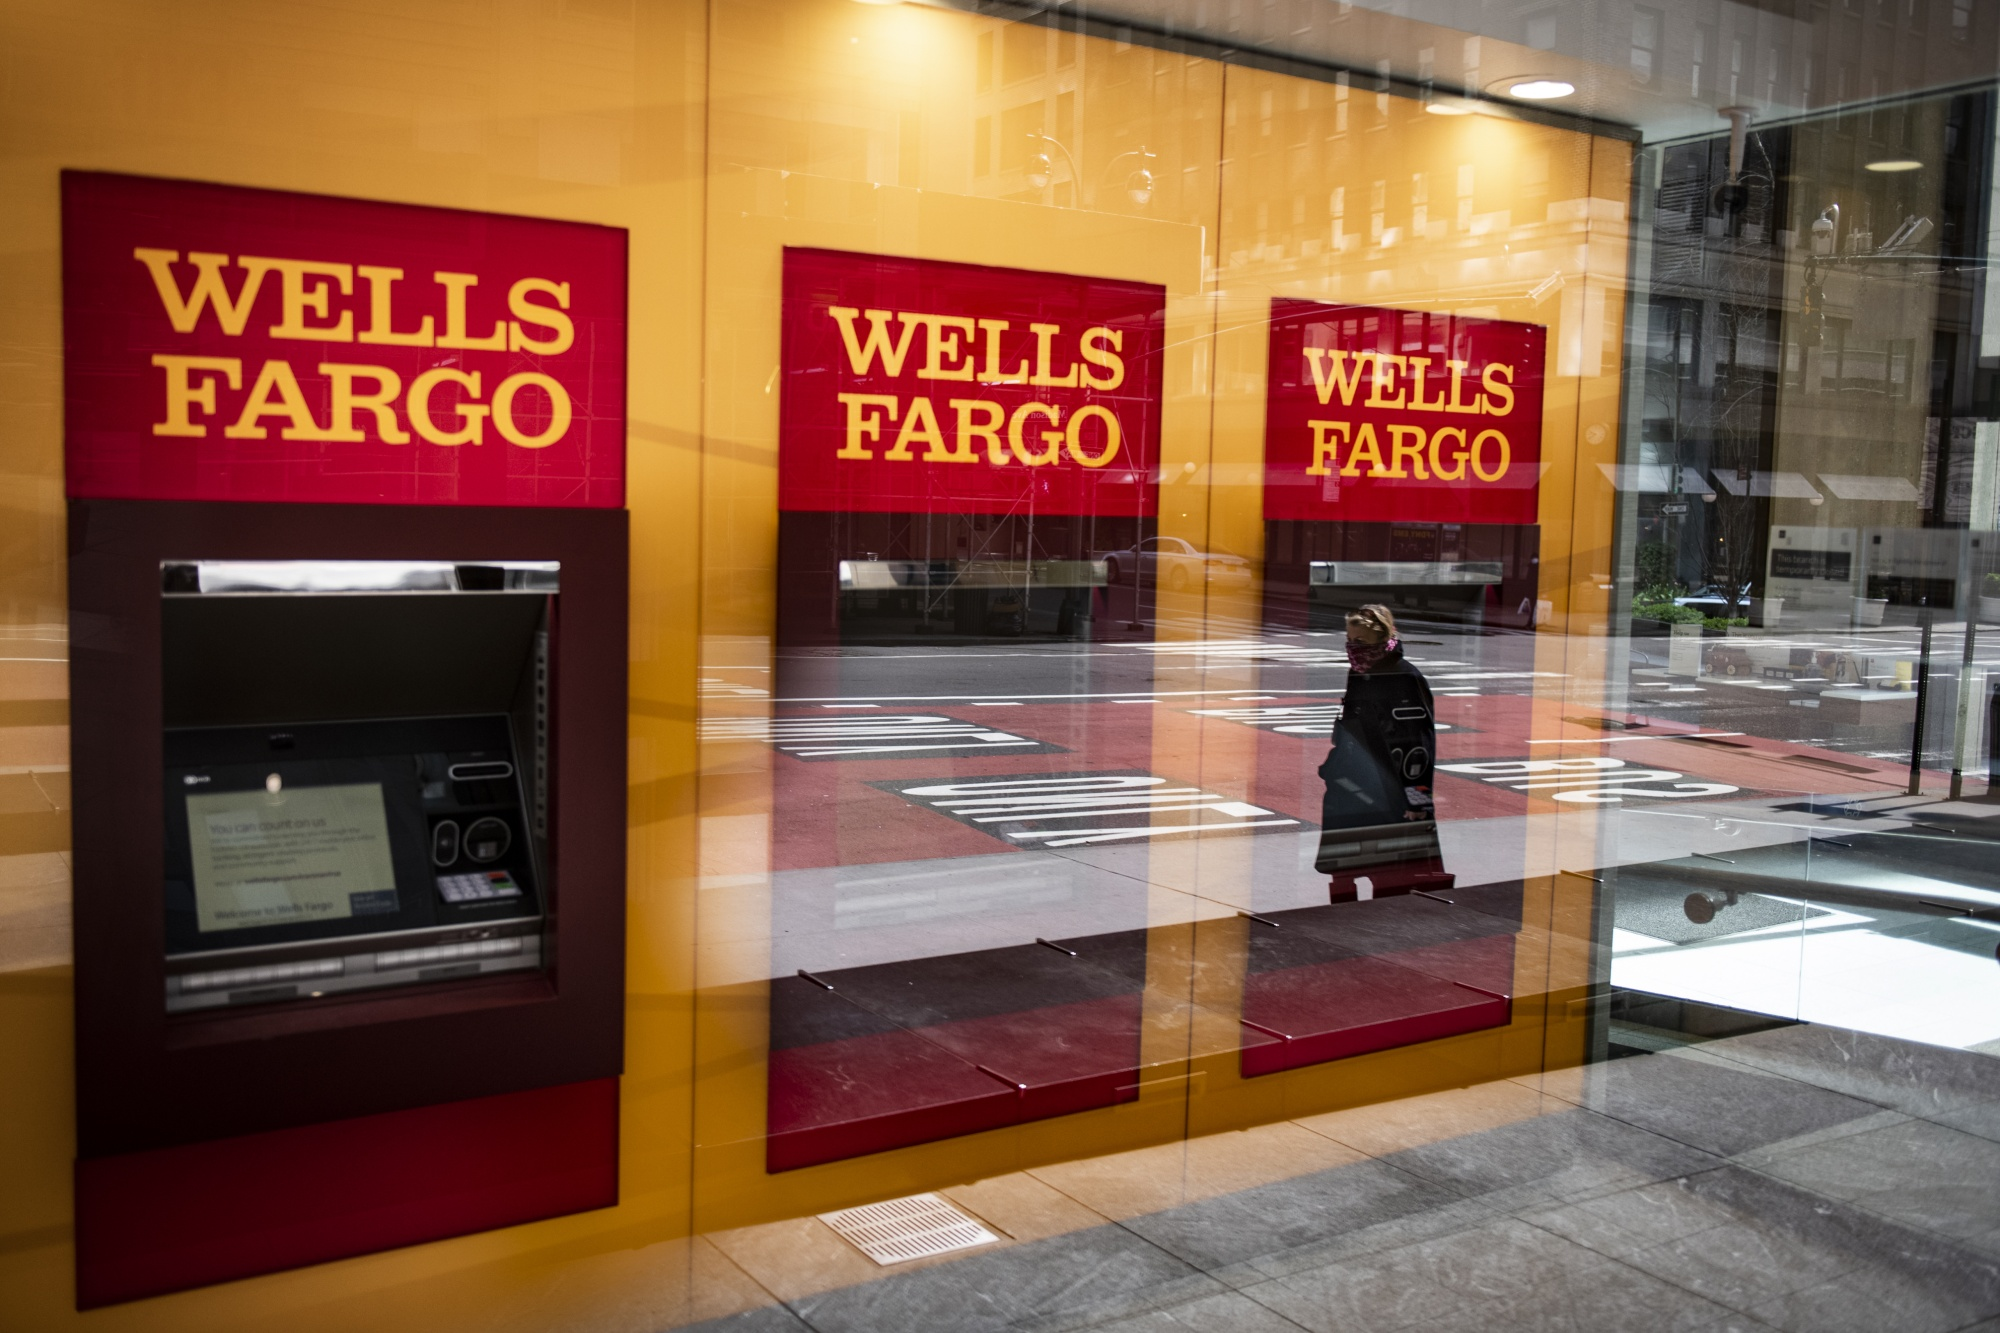 The potential sale comes as Wells Fargo pares down its assets after years of scandals.